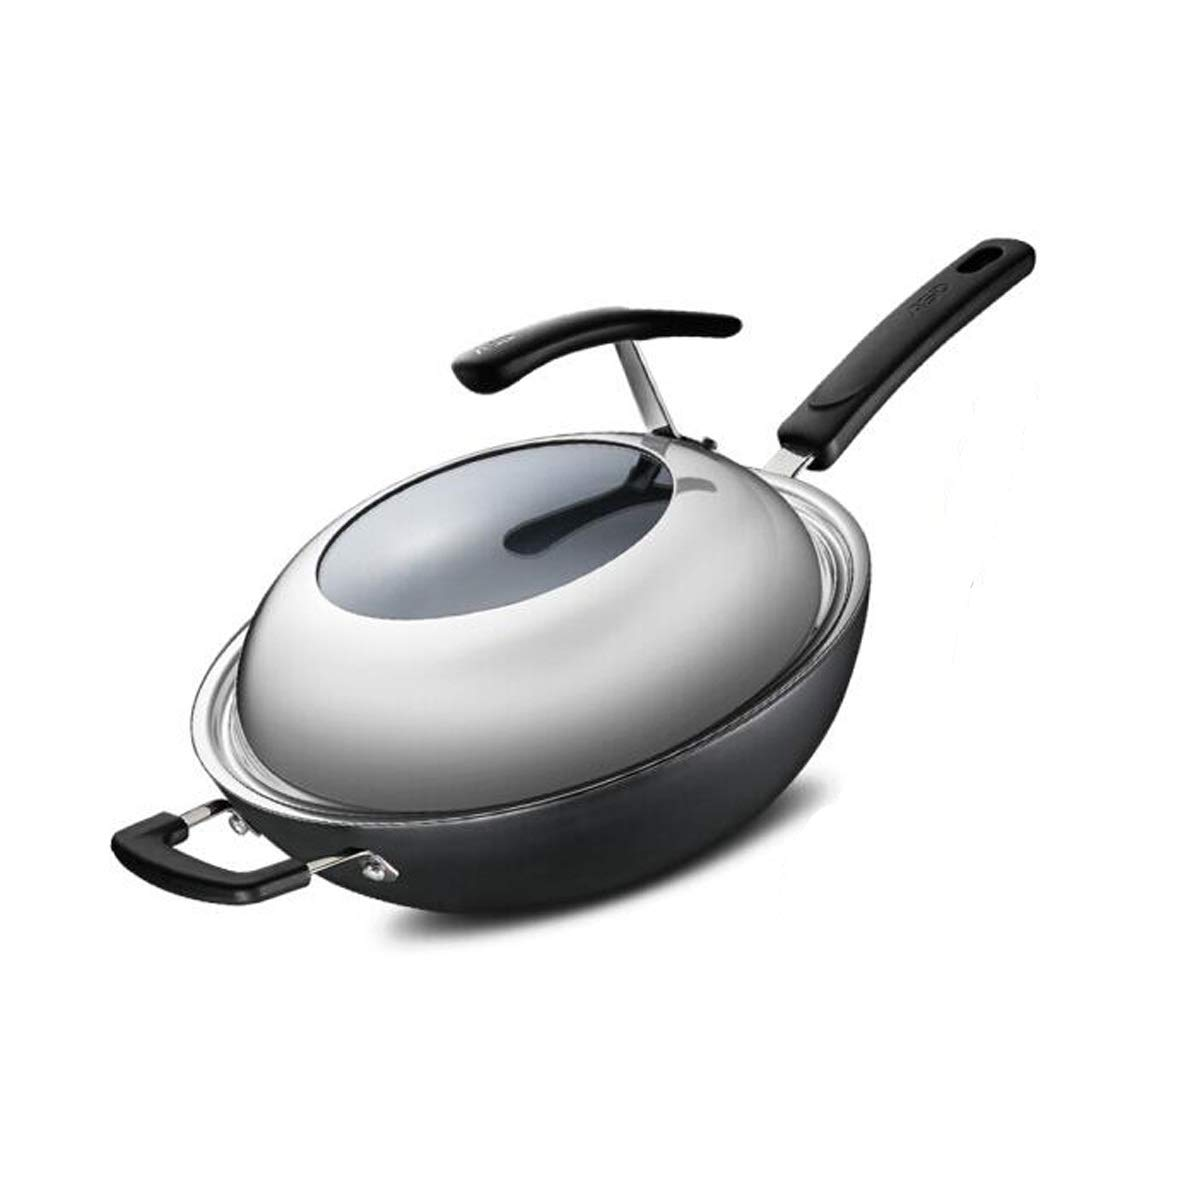 Wok, 32CM Cast Iron Pot, Rust Can Not Be Wok, Uncoated Wok, Induction Cooker Wok, Black (Color : Black, Size : A1-32CM)